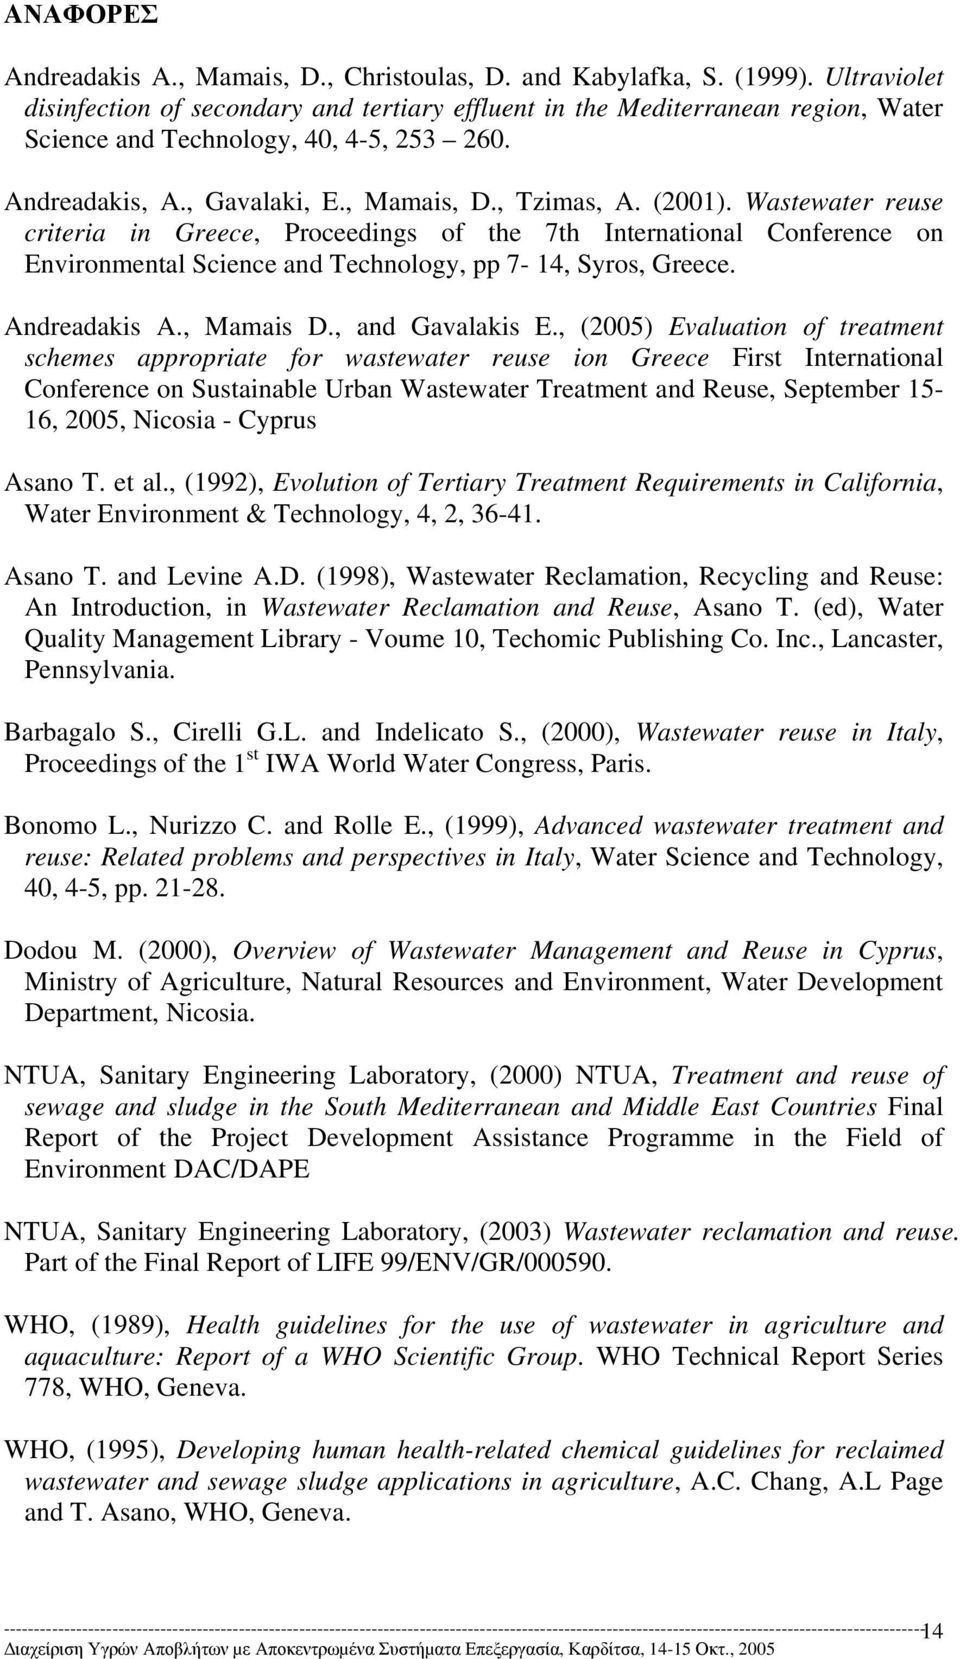 Wastewater reuse criteria in Greece, Proceedings of the 7th International Conference on Environmental Science and Technology, pp 7-14, Syros, Greece. Andreadakis A., Mamais D., and Gavalakis E.